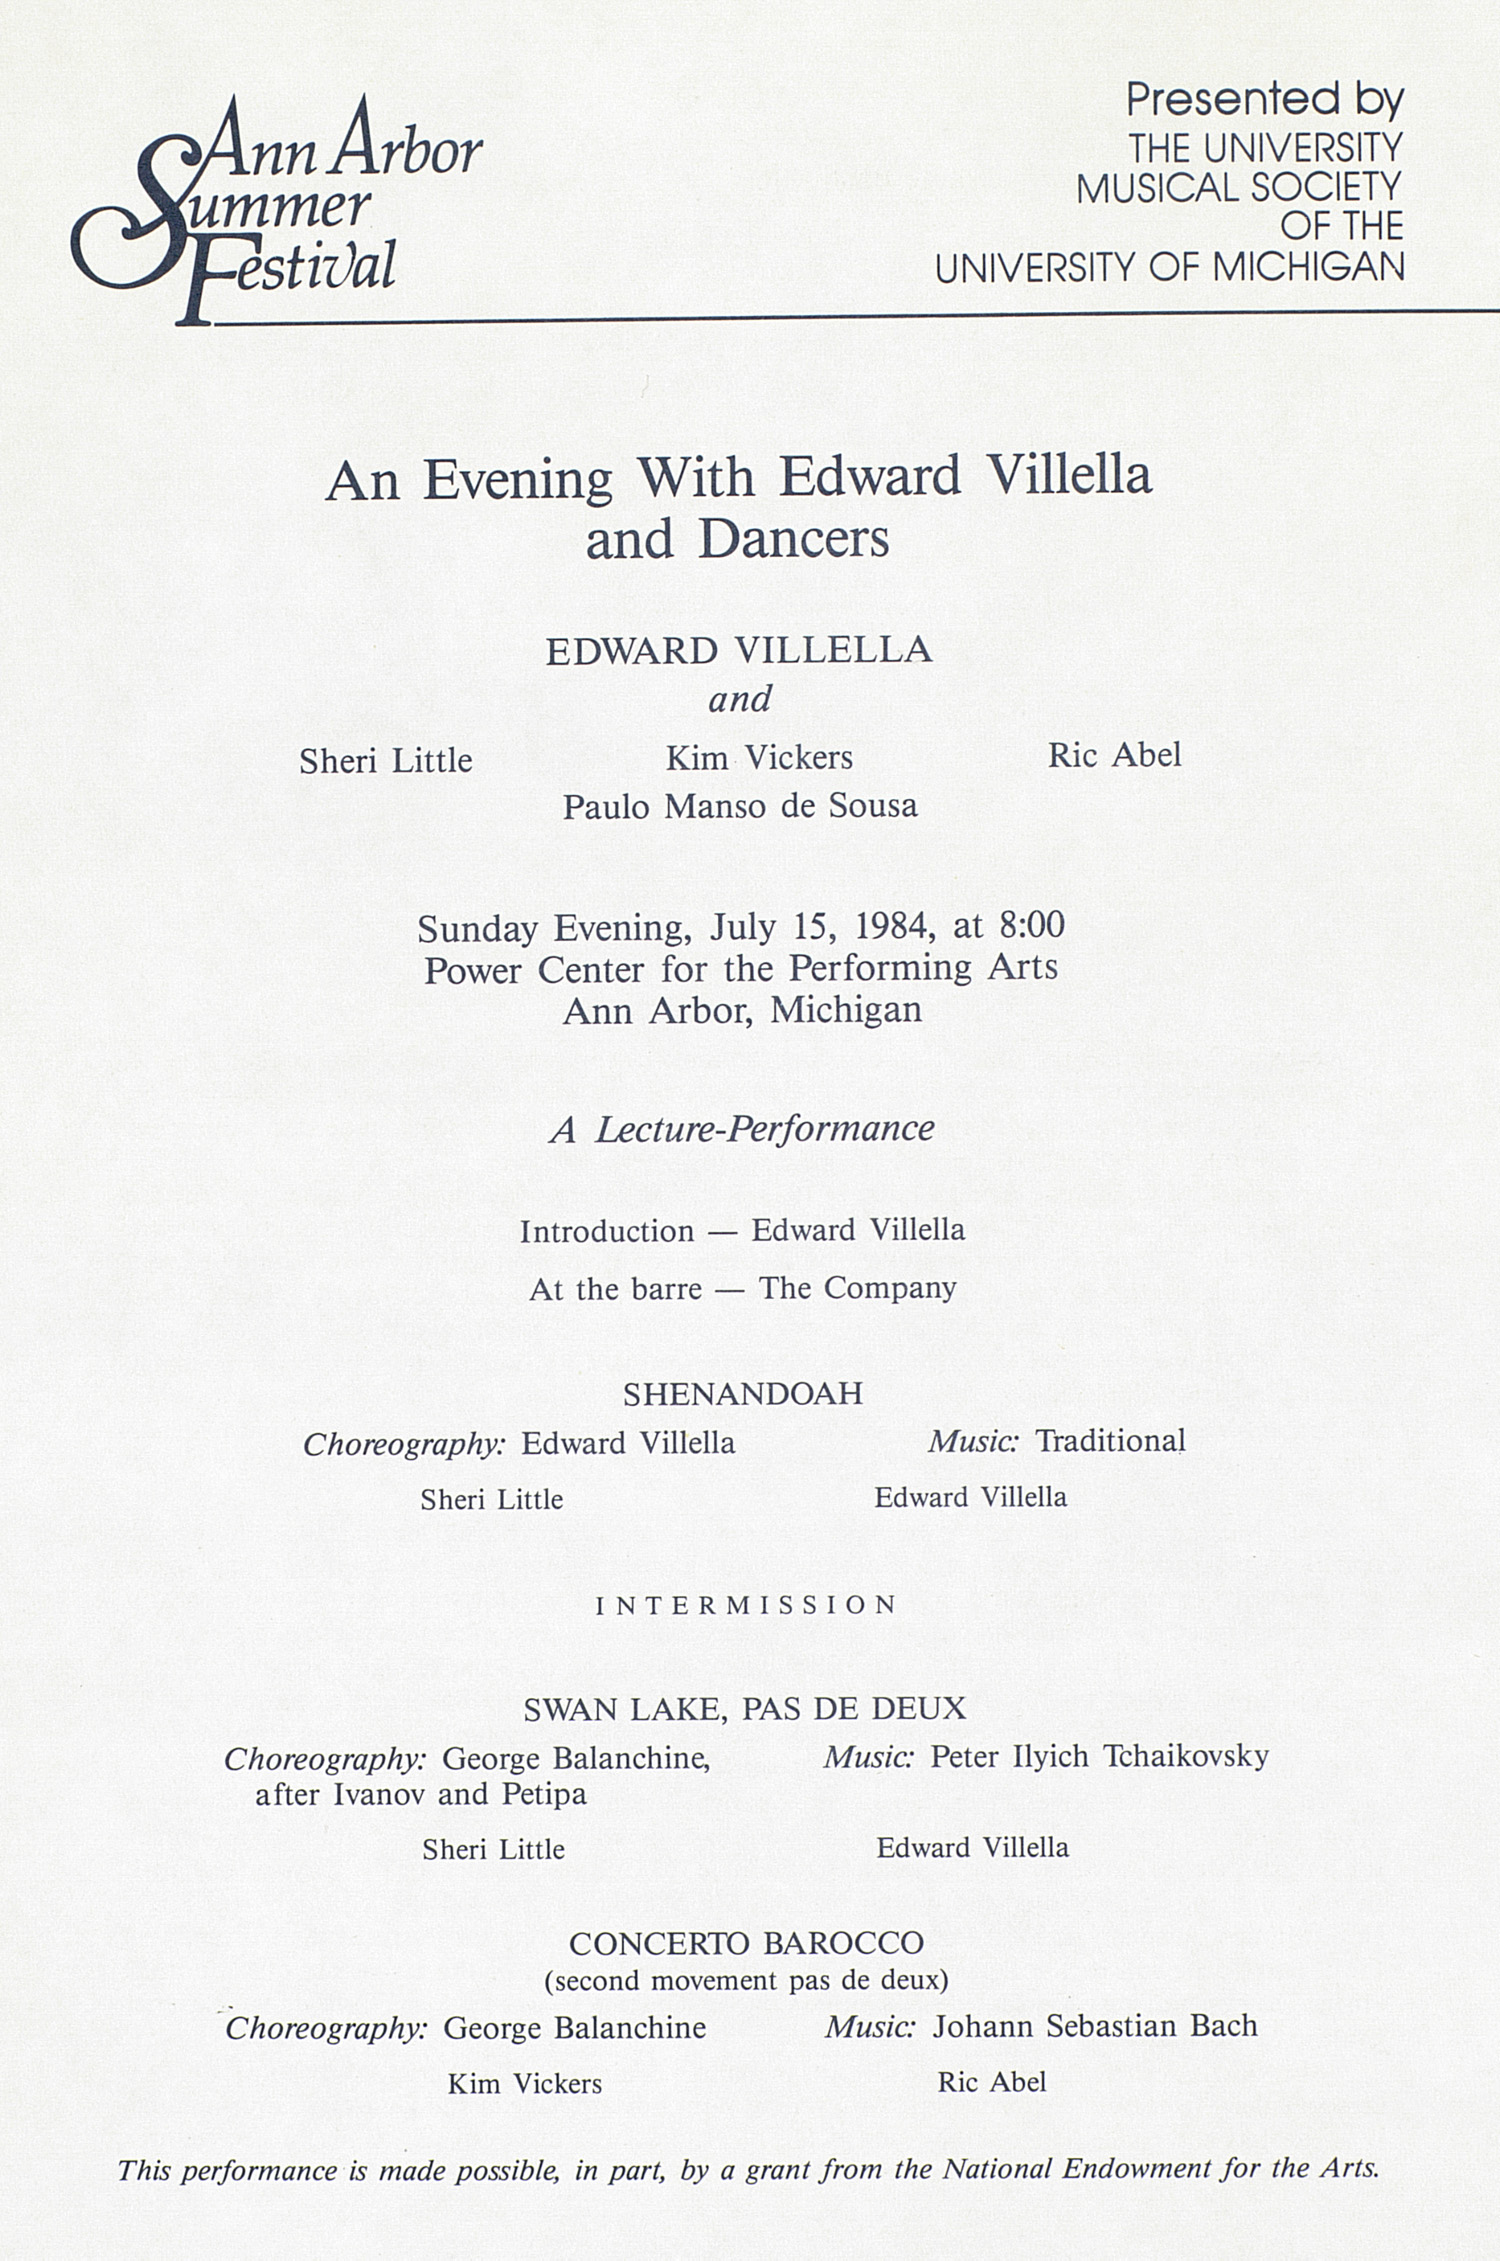 UMS Concert Program, July 15, 1984: Ann Arbor Summer Festival -- An Evening With Edward Villella And Dancers image